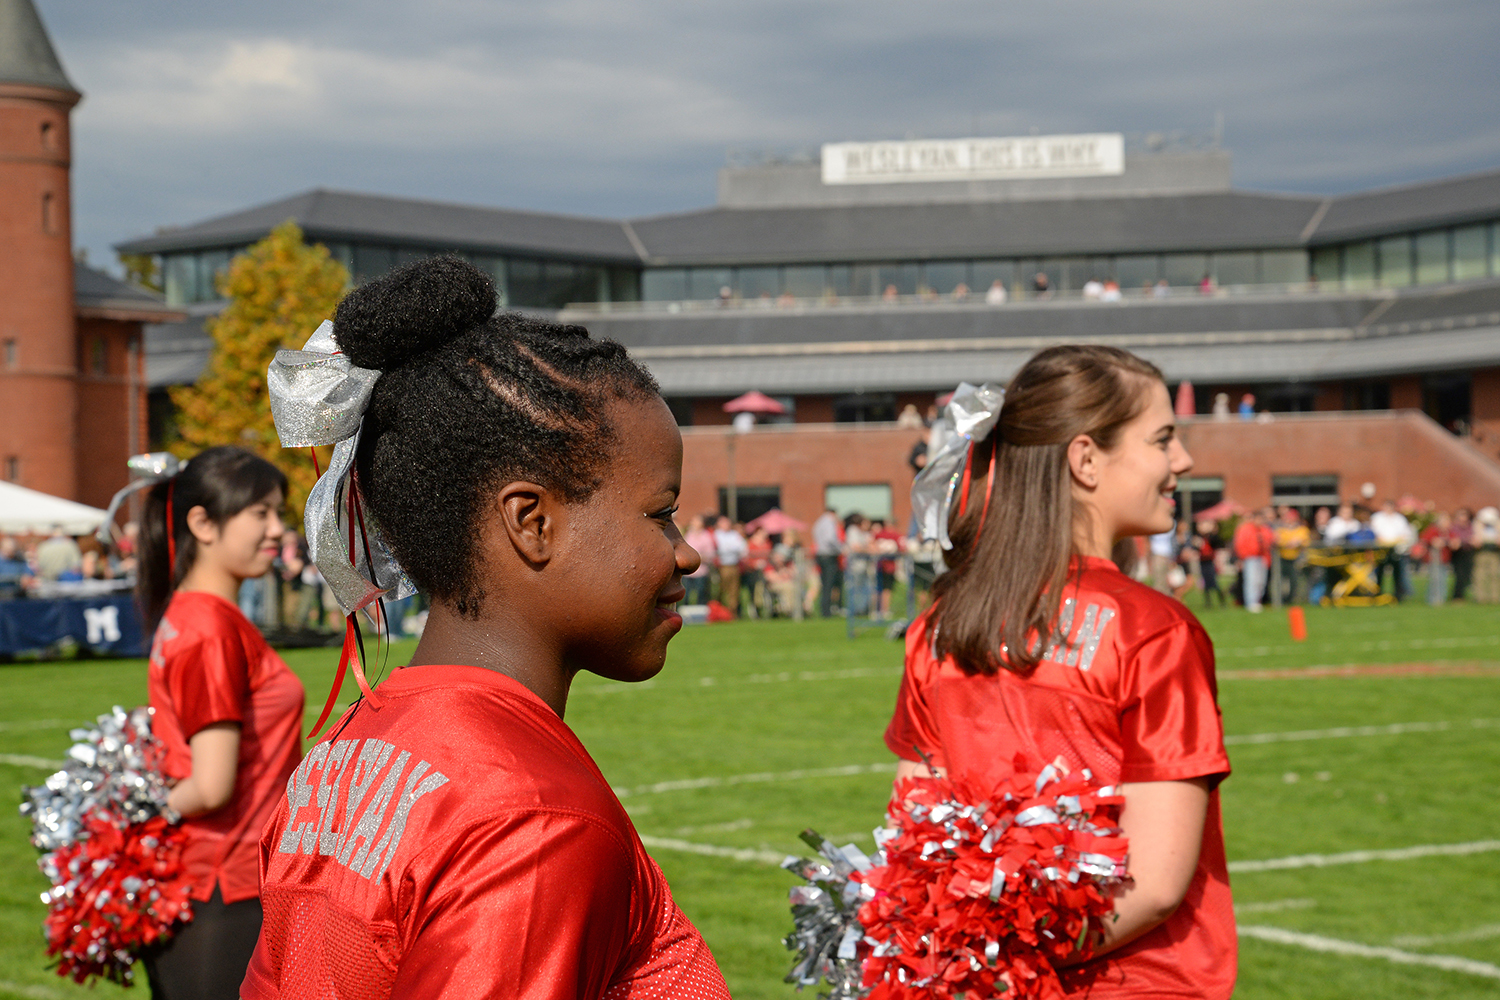 Homecoming Weekend at Wesleyan, Oct. 18, 2014. (Photo by Olivia Drake)